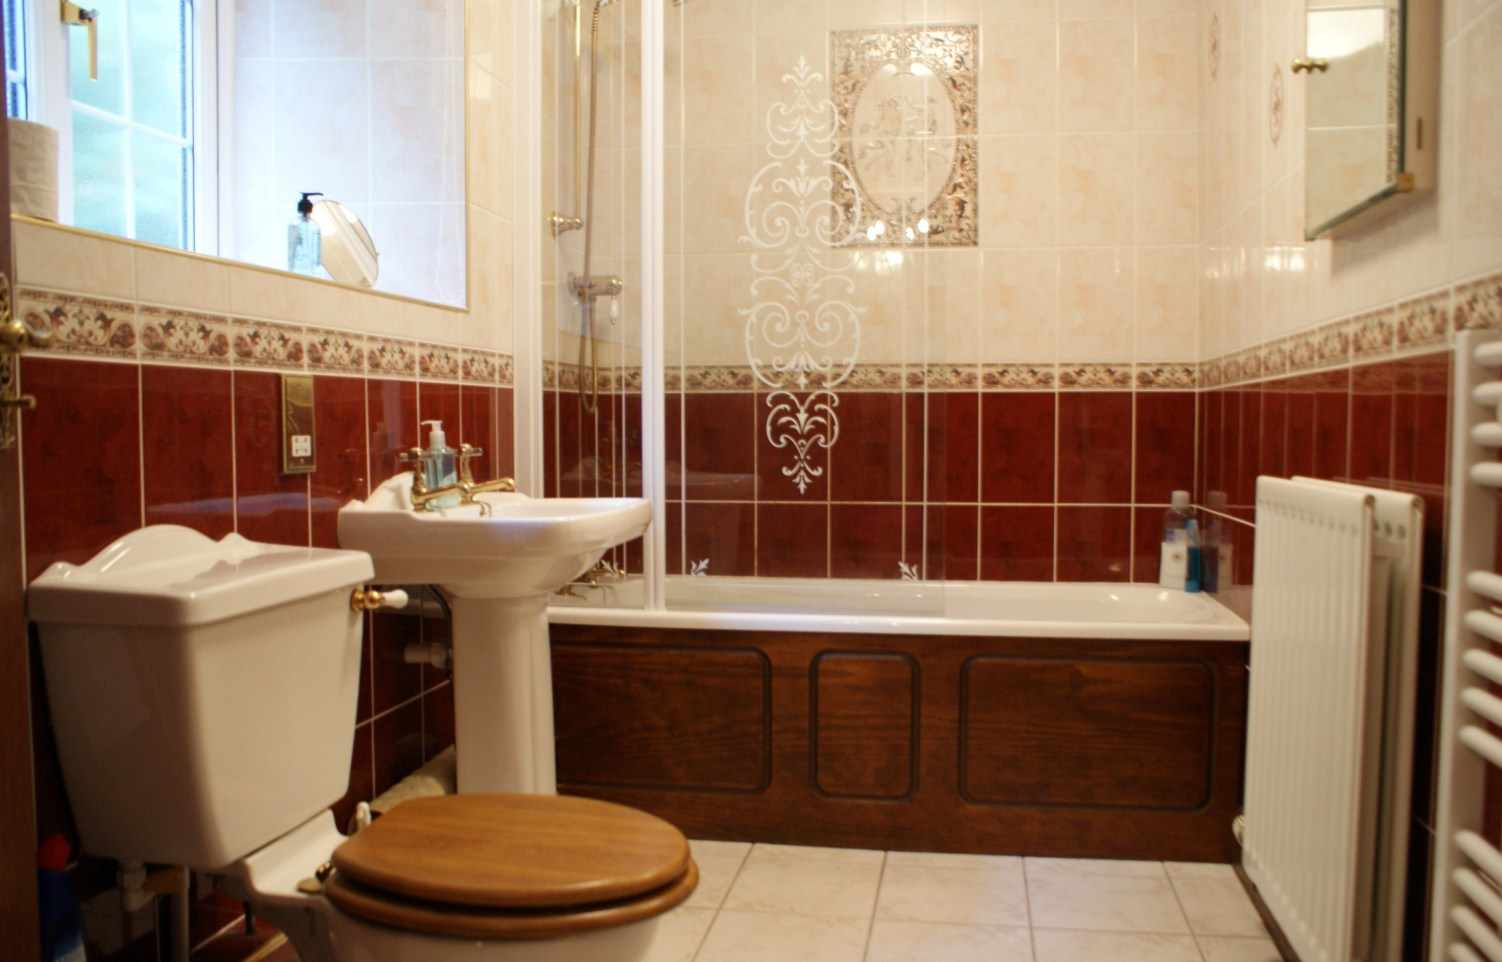 Fantastic Wooden Furniture And Pedestal Sinks Create Atmosphere Retro Bathroom Red And Beige Toilet Bowl Sink And Combined Shower